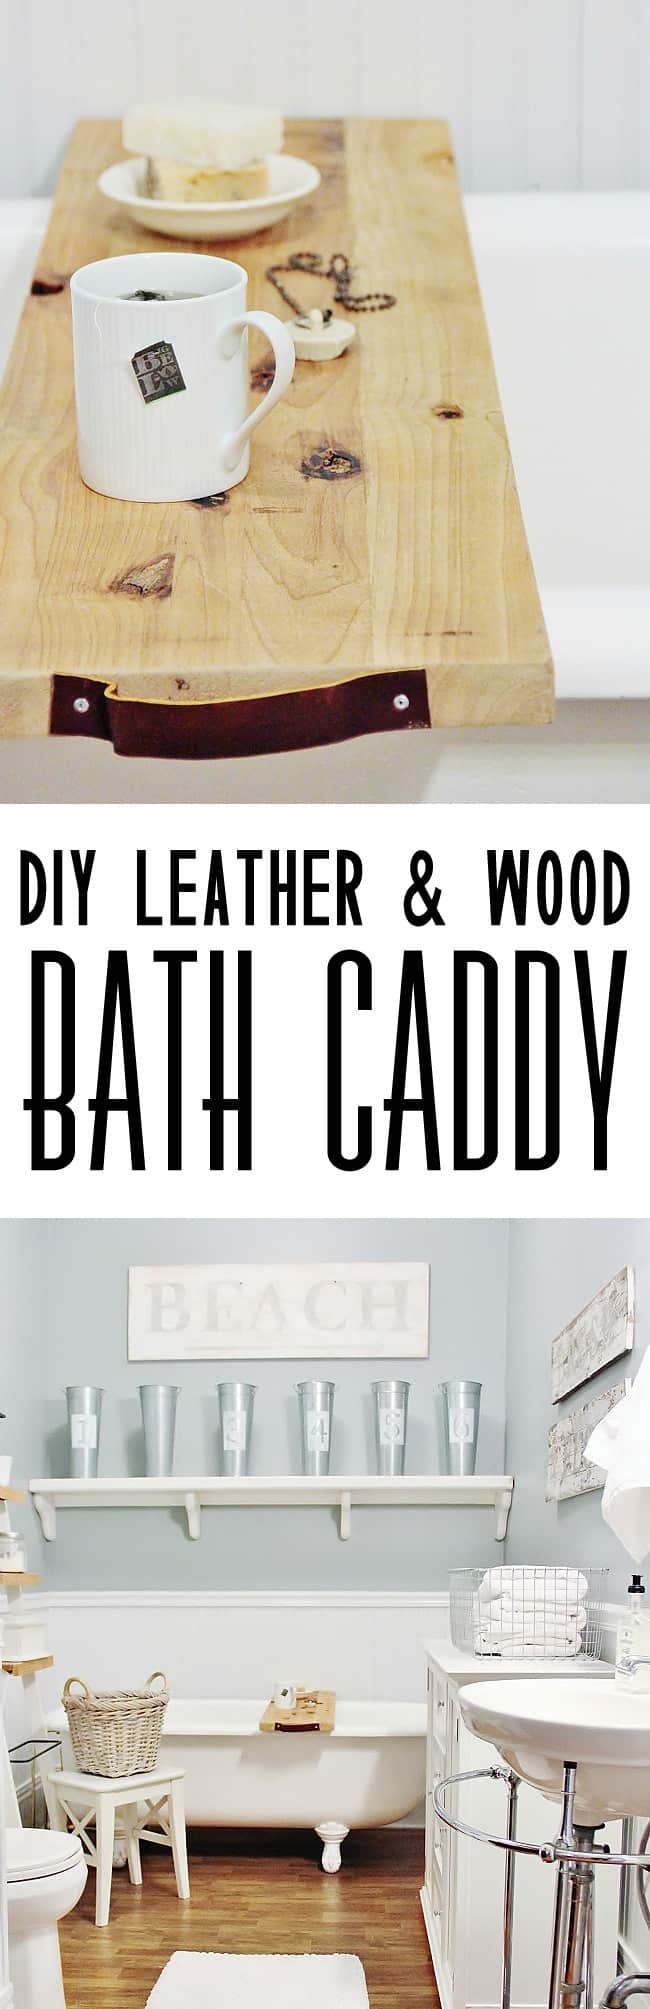 leather-and-wood-bath-caddy-TOWER